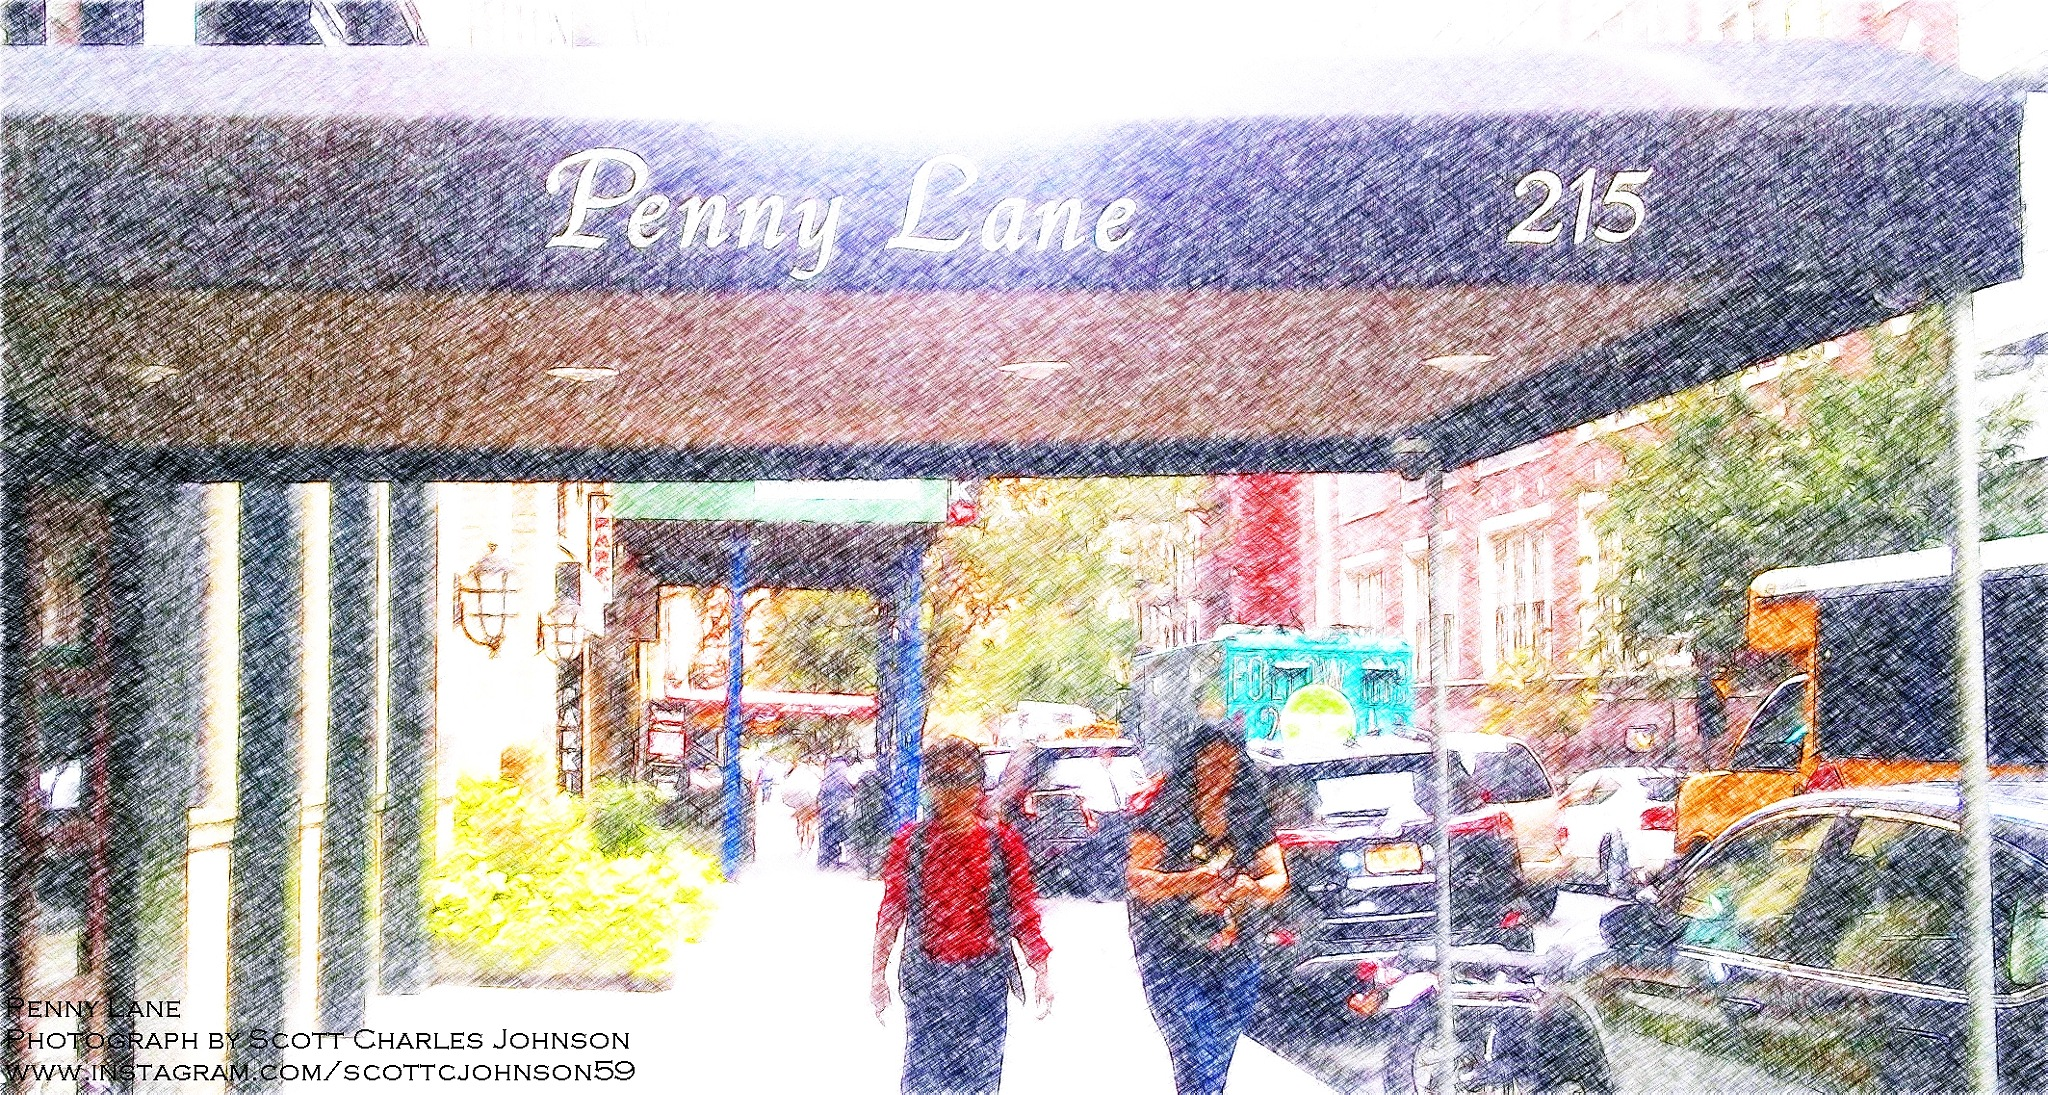 215 E 18th Street NYC aka Penny Lane by Scott Charles Johnson